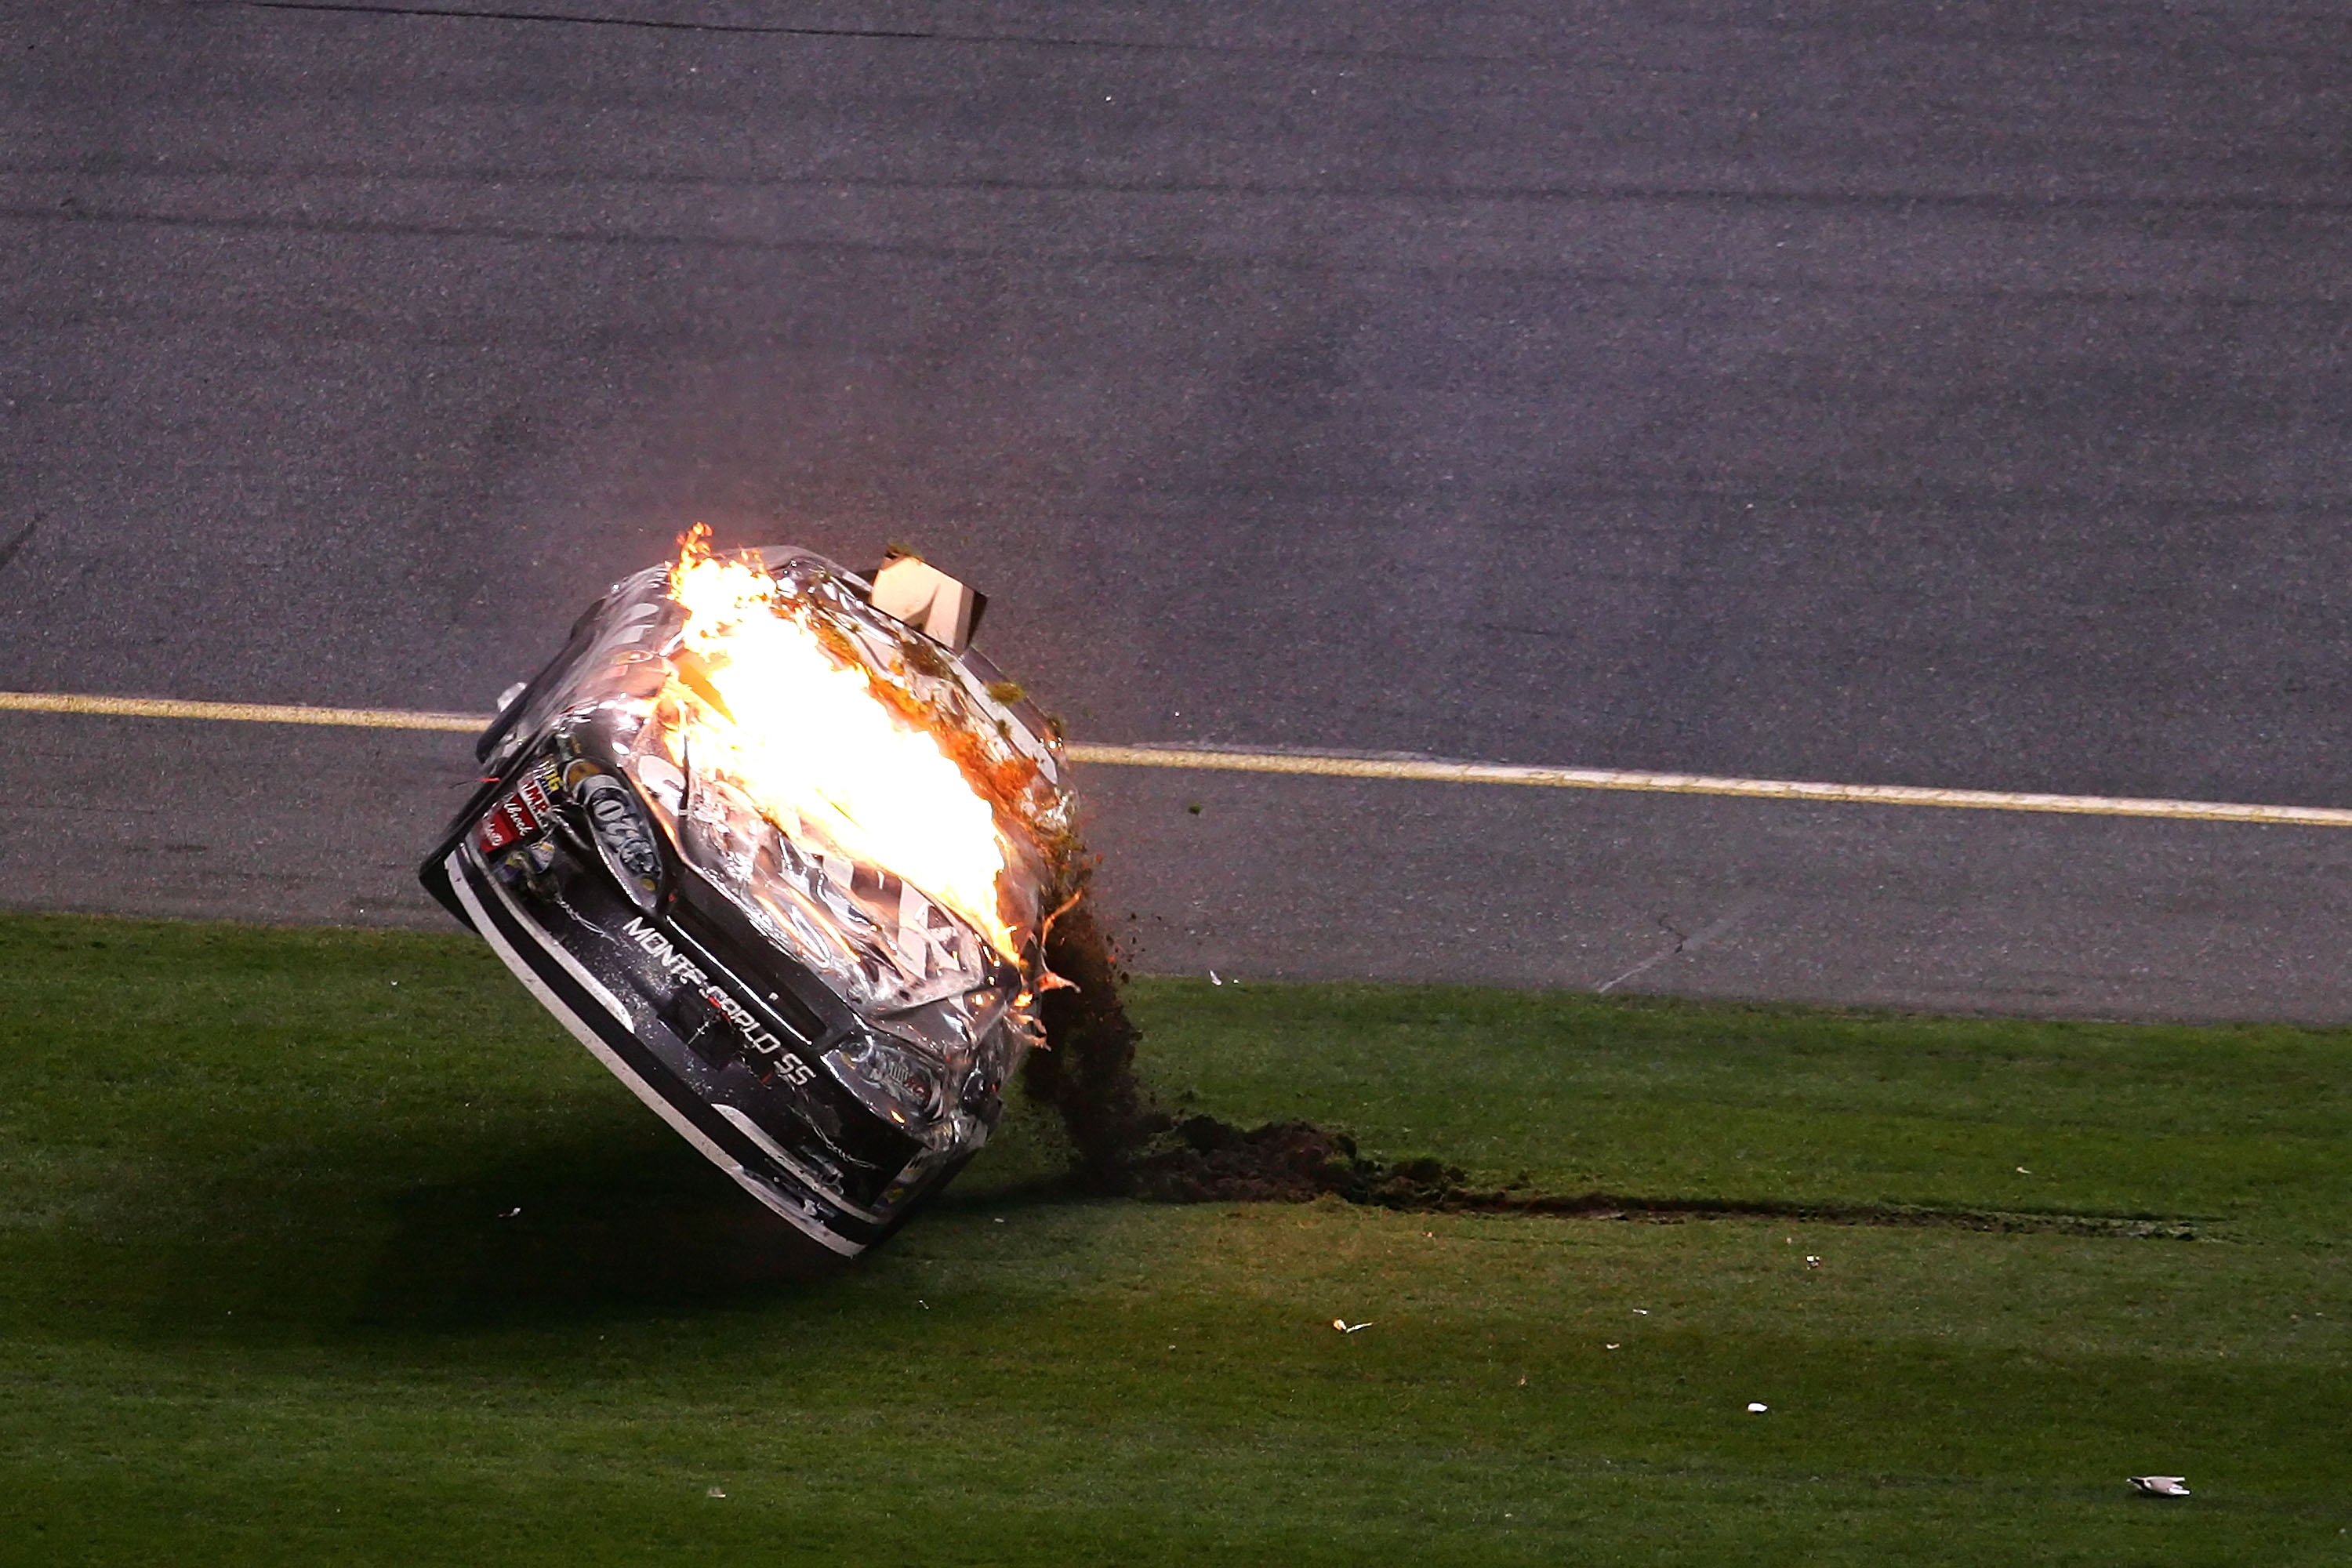 Clint Bowyer has fared much better in restrictor plate racing since this incident in 2007.